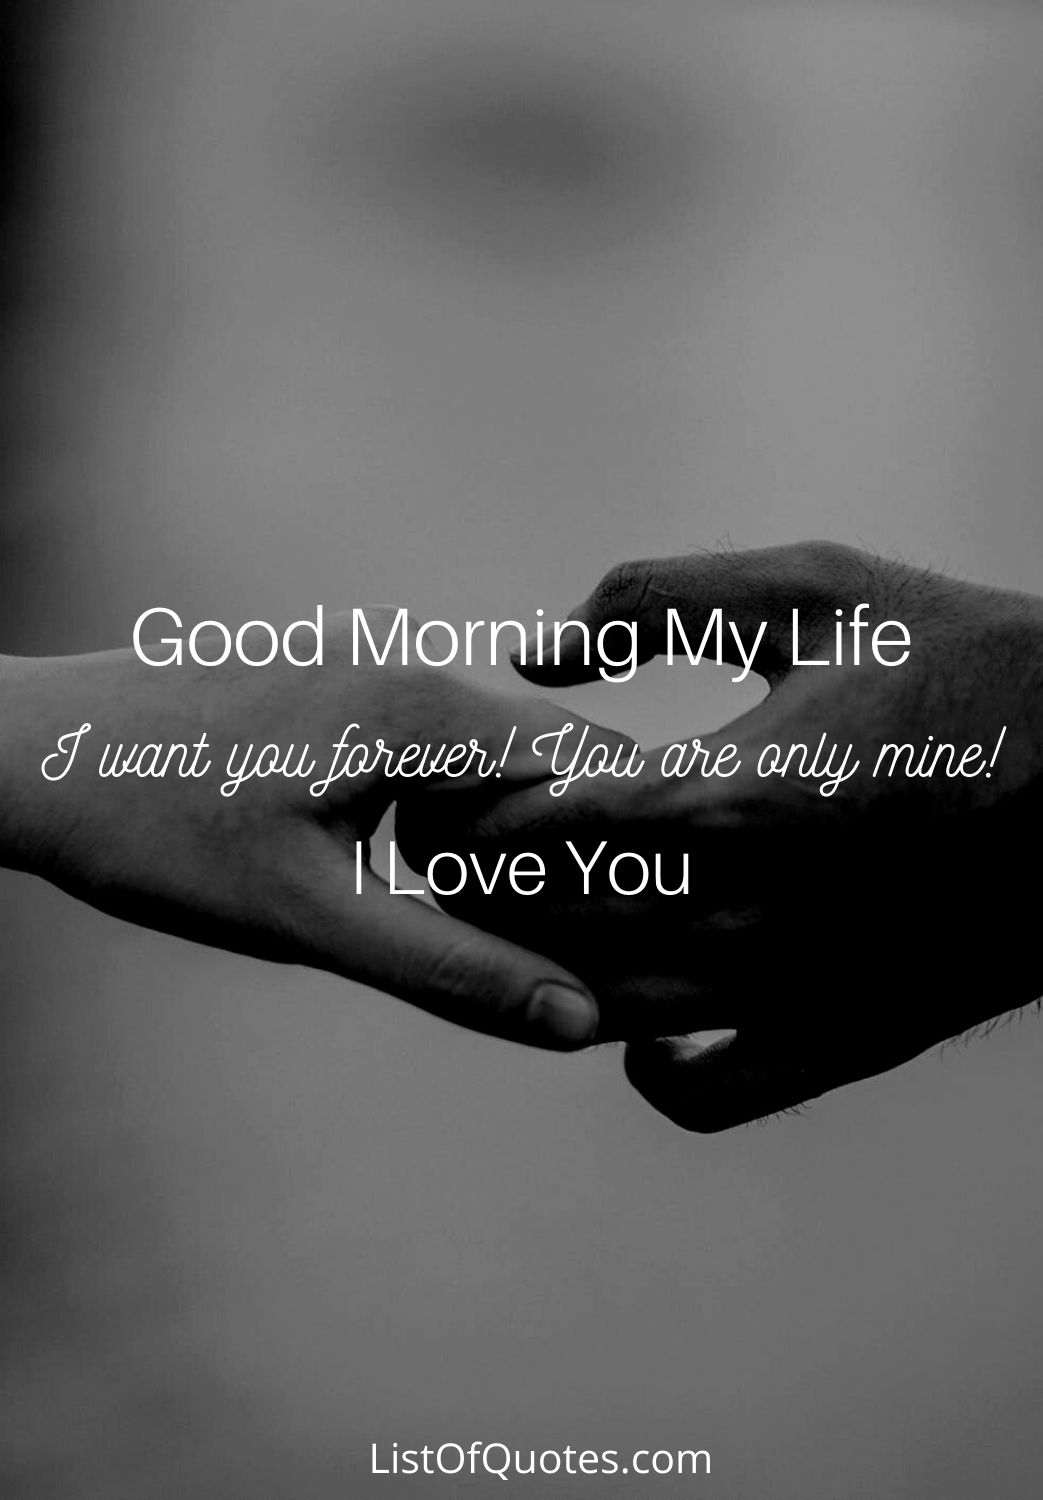 romantic cute good morning messages quotes wishes for husband wife(hd image free download)